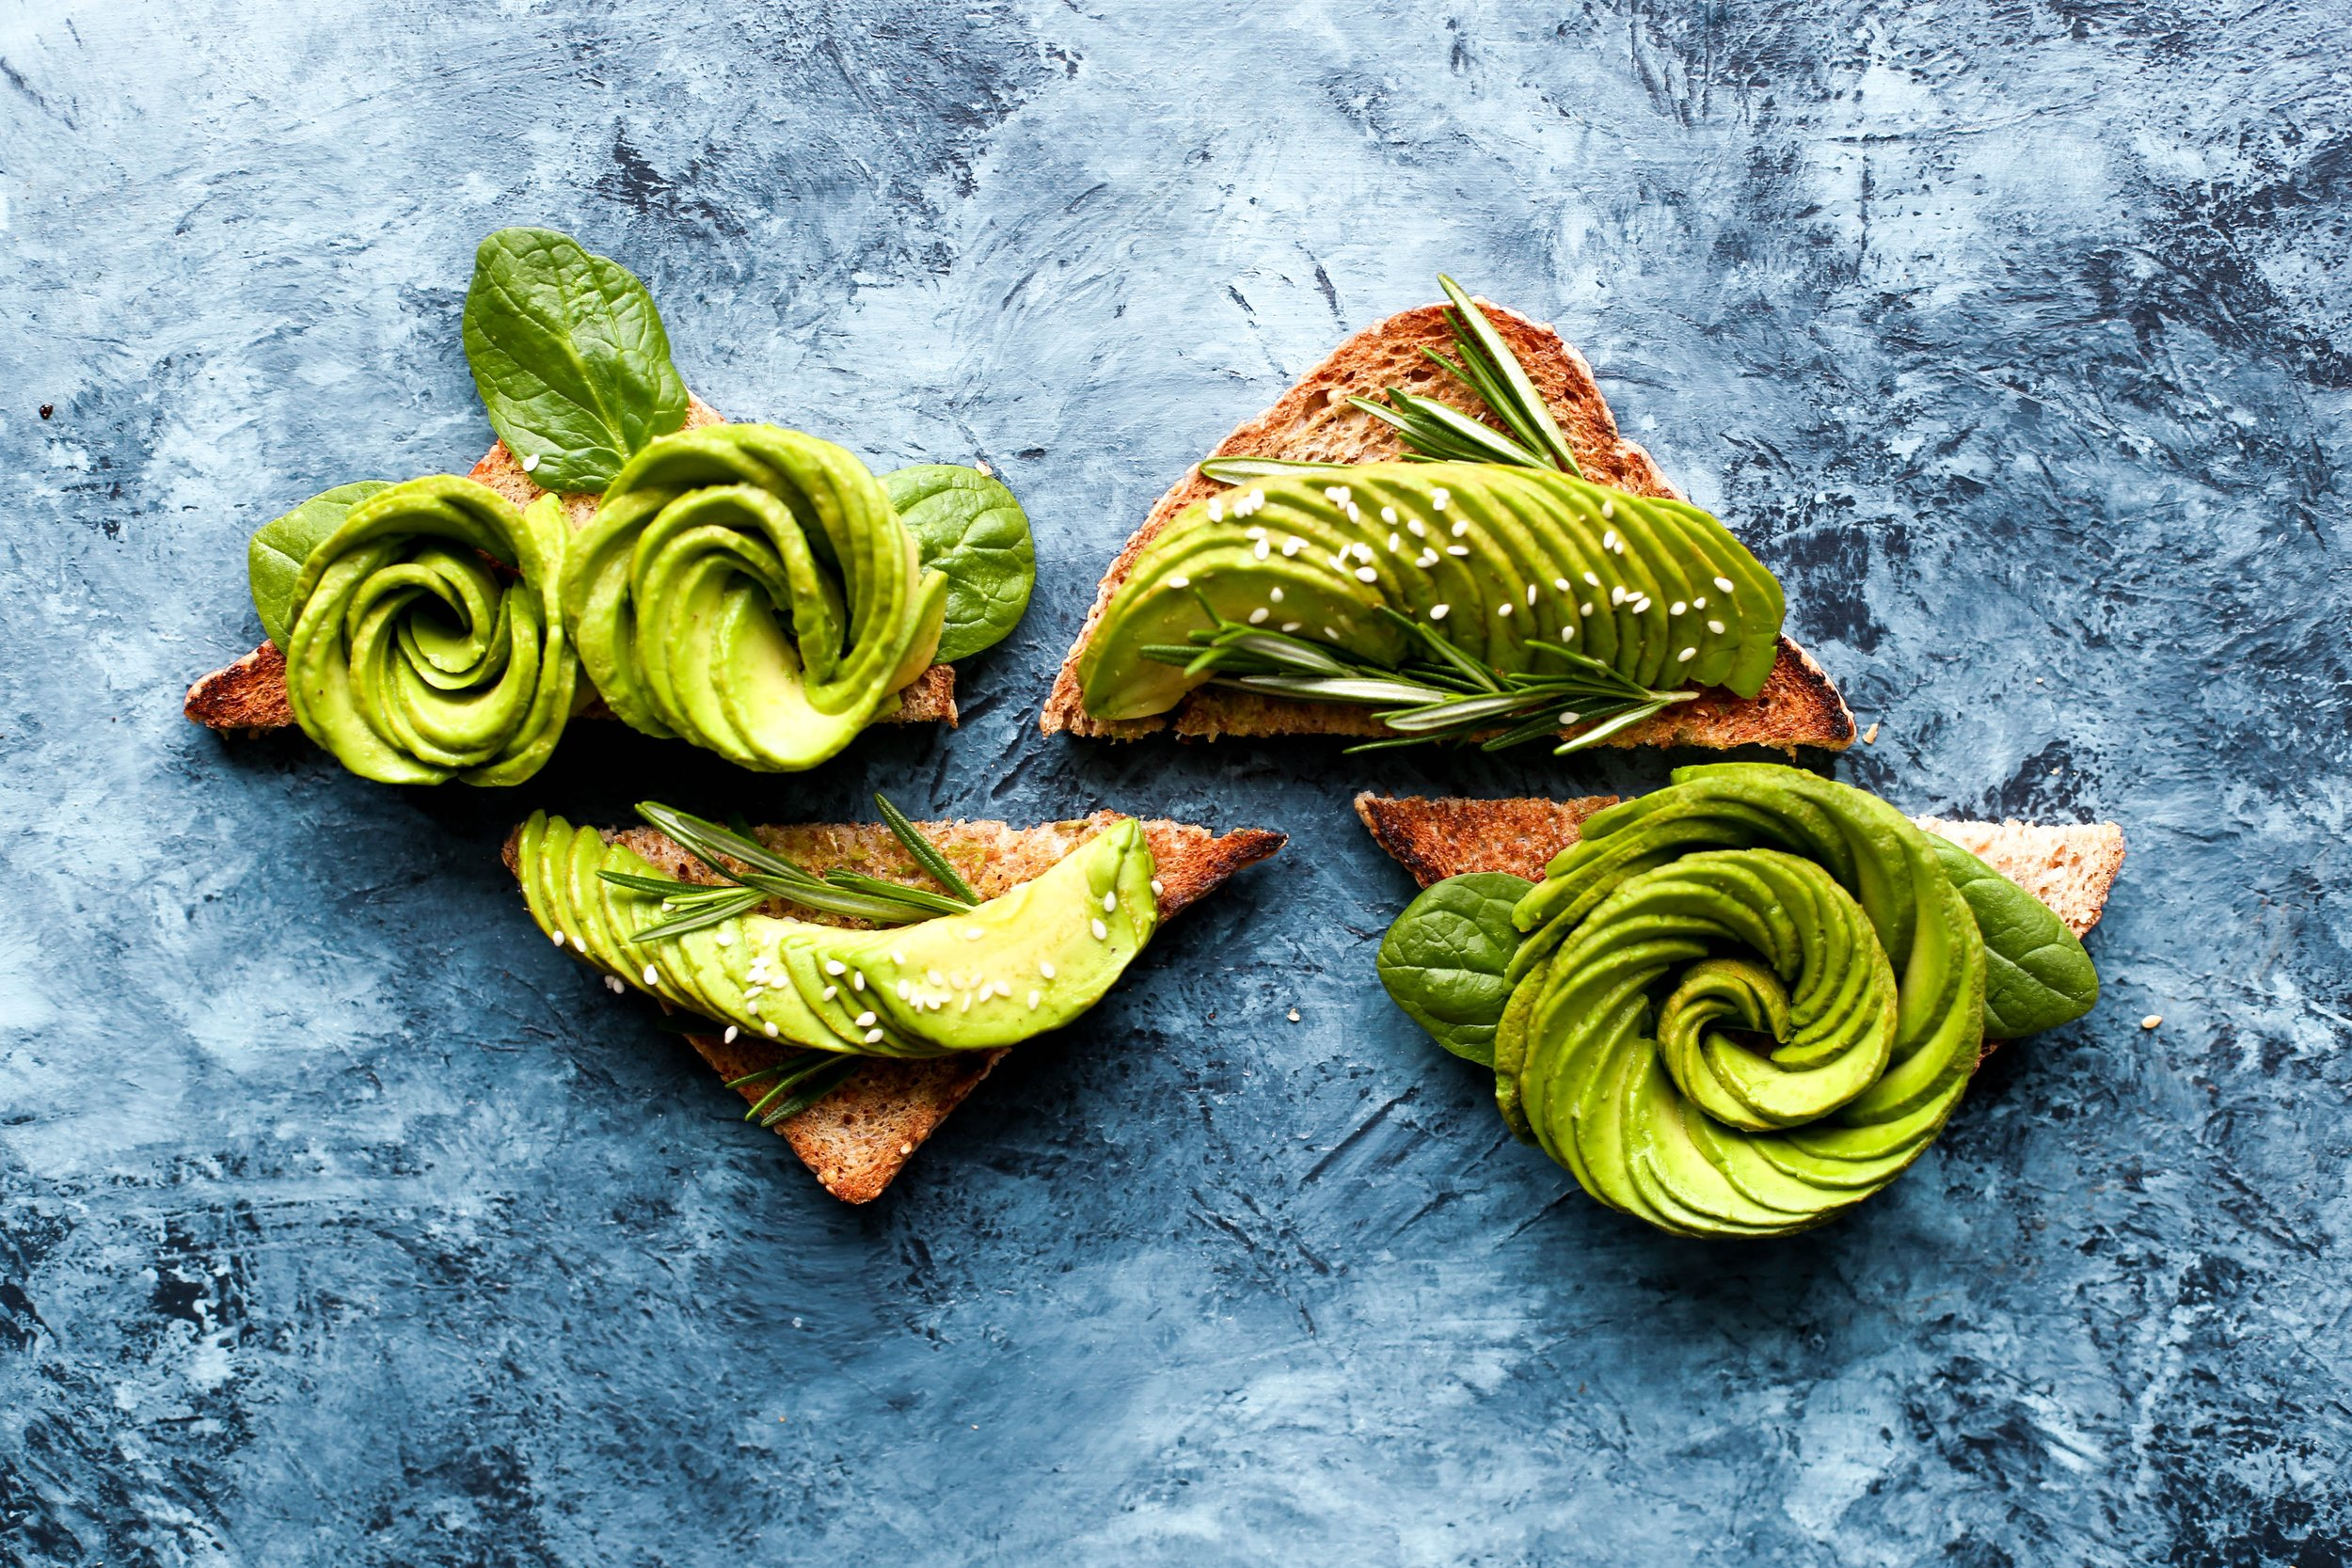 SMASHED AVO: In 2017, an Australian economist blamed the cost of eating avocado on toast in cafes for millennials not saving enough money to buy a house.